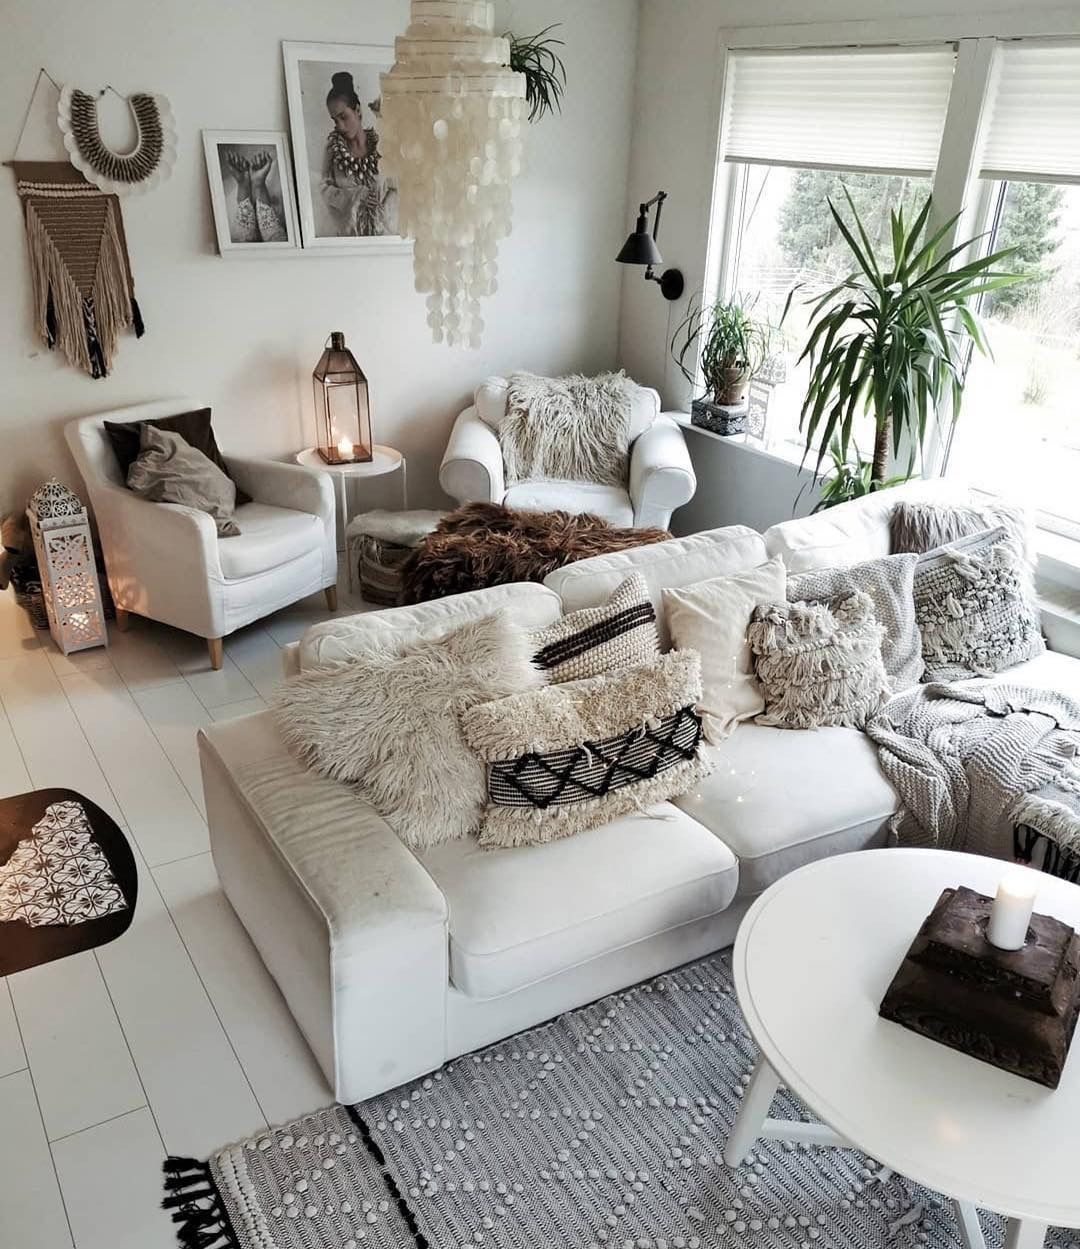 Monotone room with a hint of Boho decor. Boho done right ...